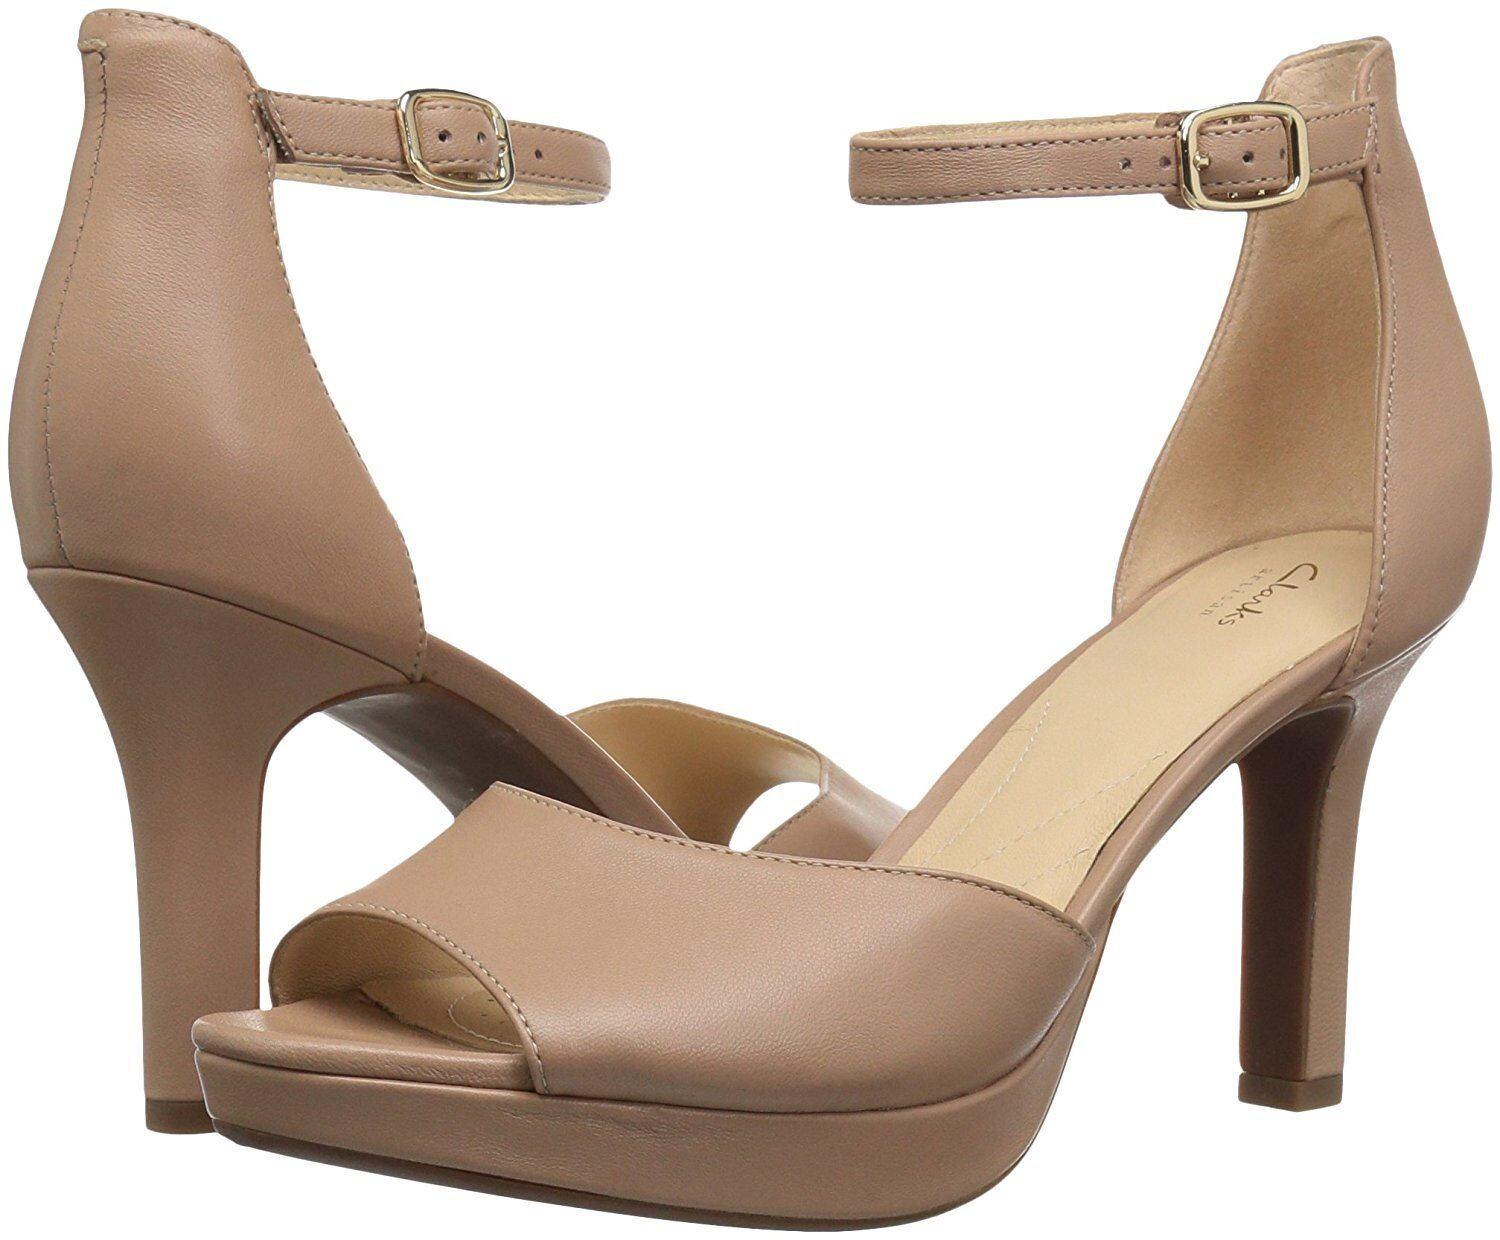 Women's Shoes Clarks Mayra Dove Peep Toe Ankle Strap Heel 33358 Beige *New*